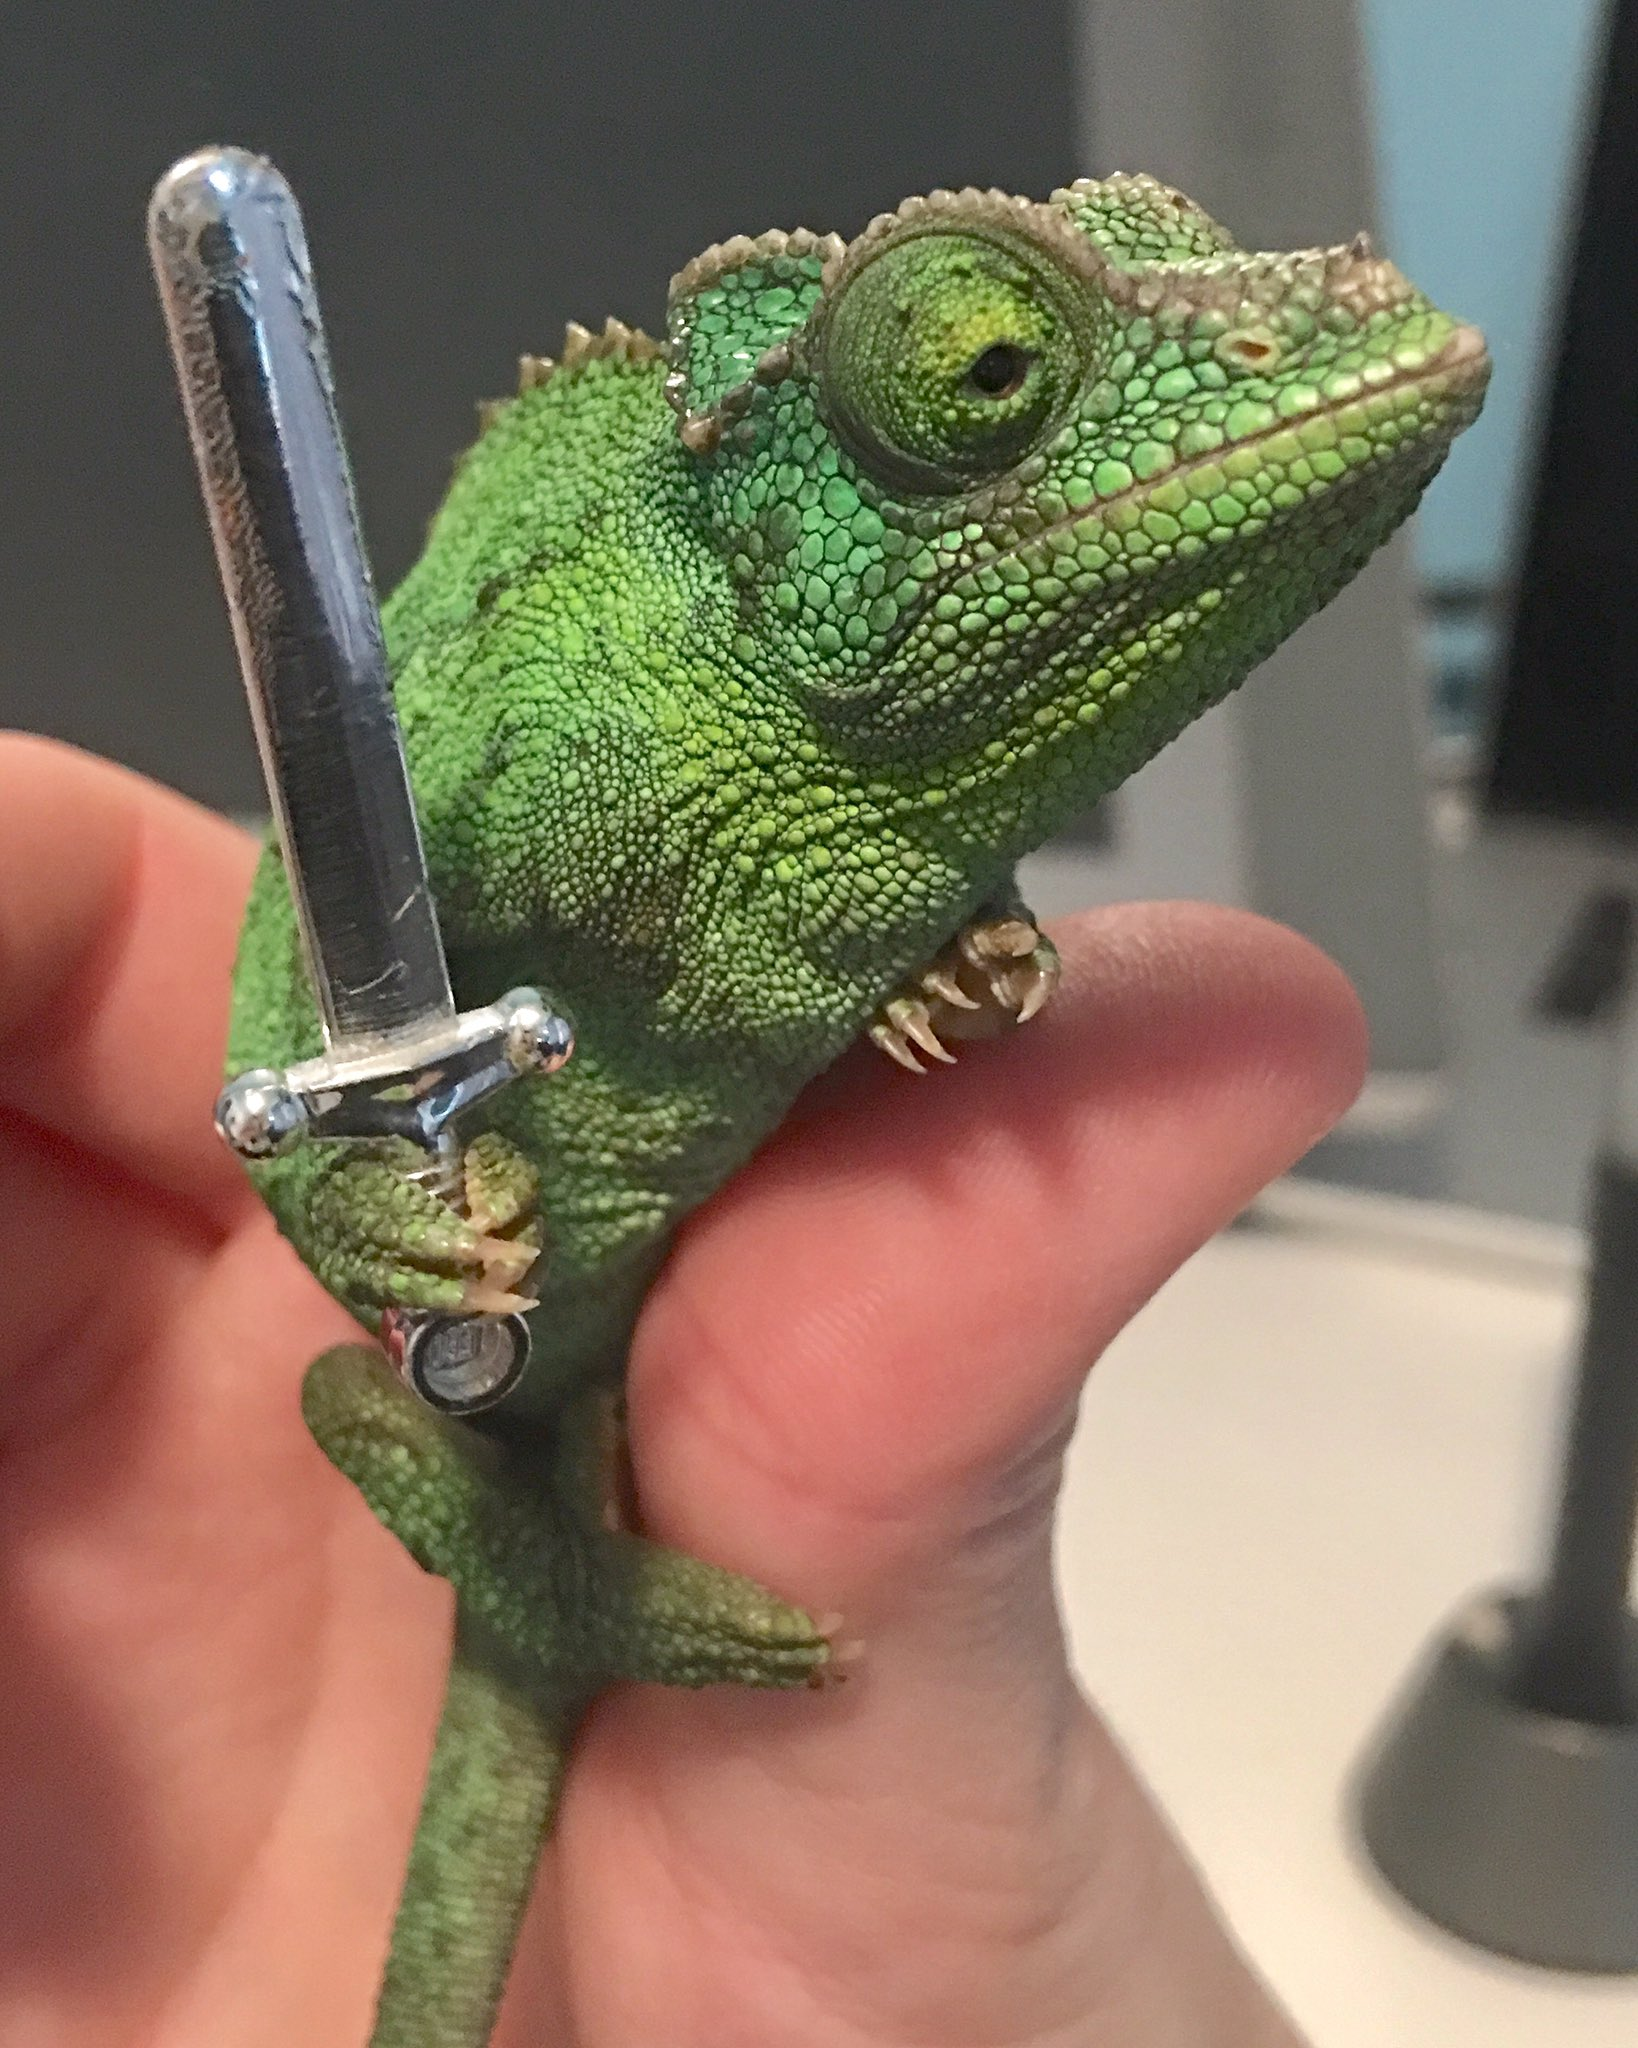 Chameleons are fun cause they'll grab anything you give them. https://t.co/aTJ2Abjrs4